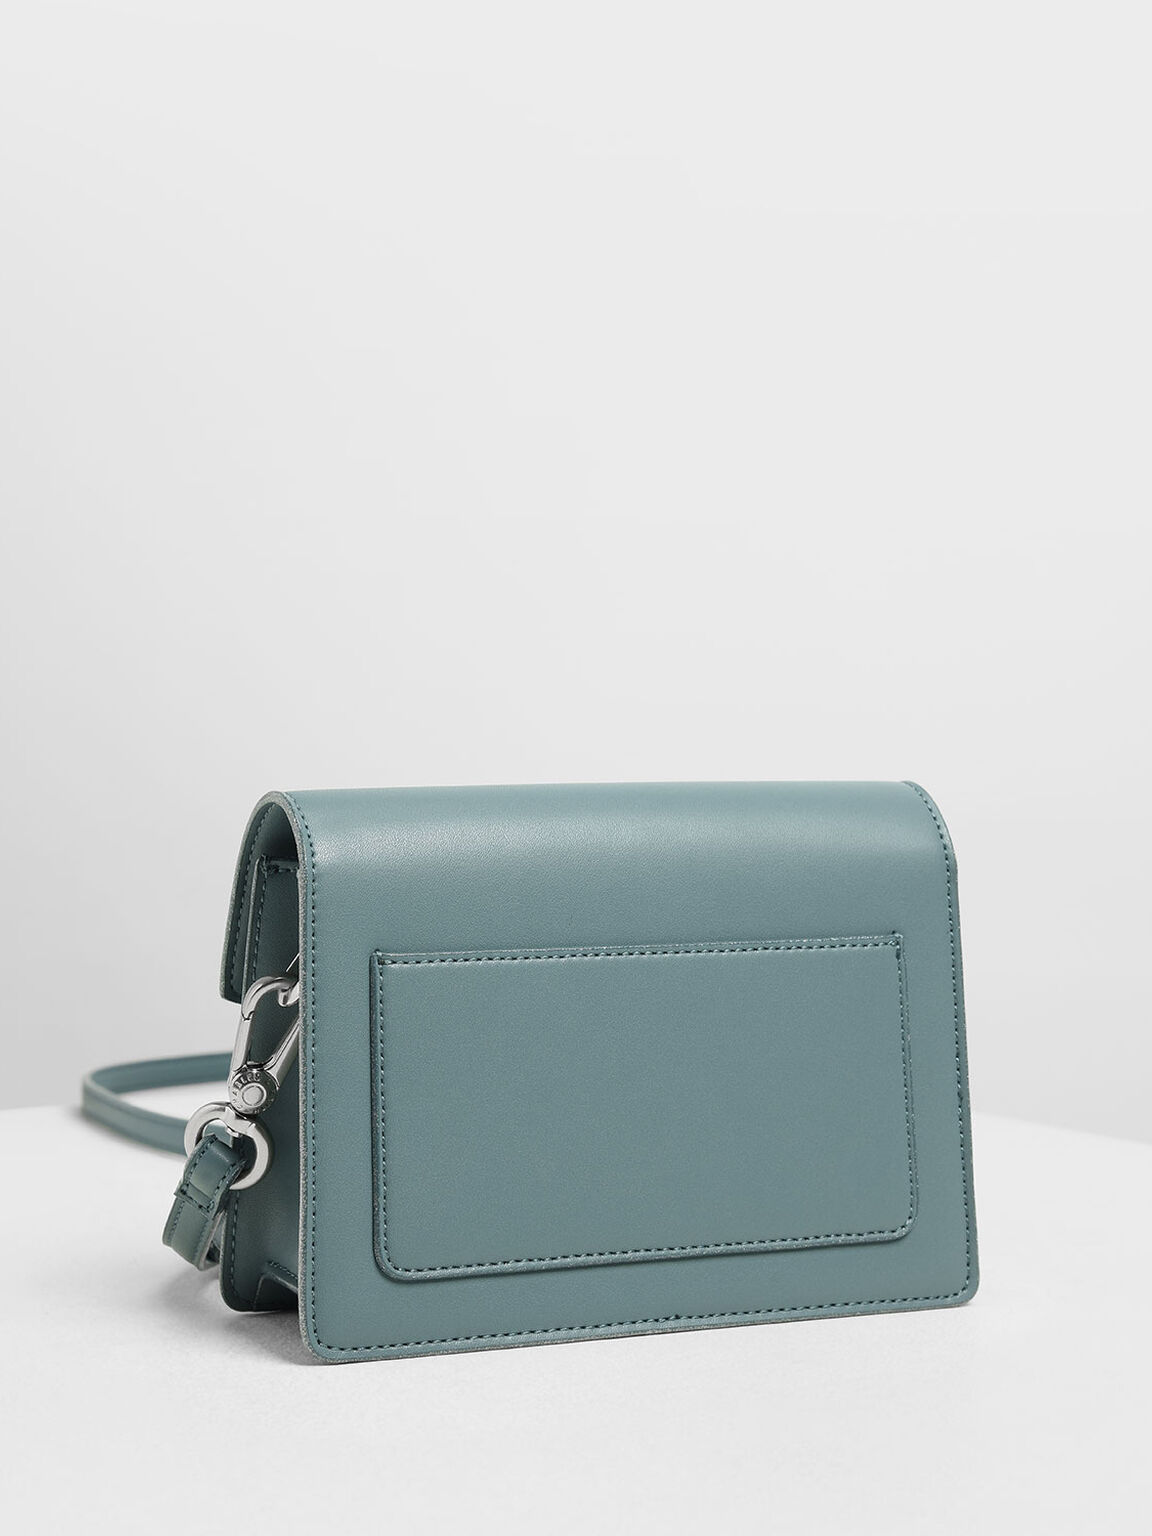 Front Flap Crossbody Bag, Teal, hi-res